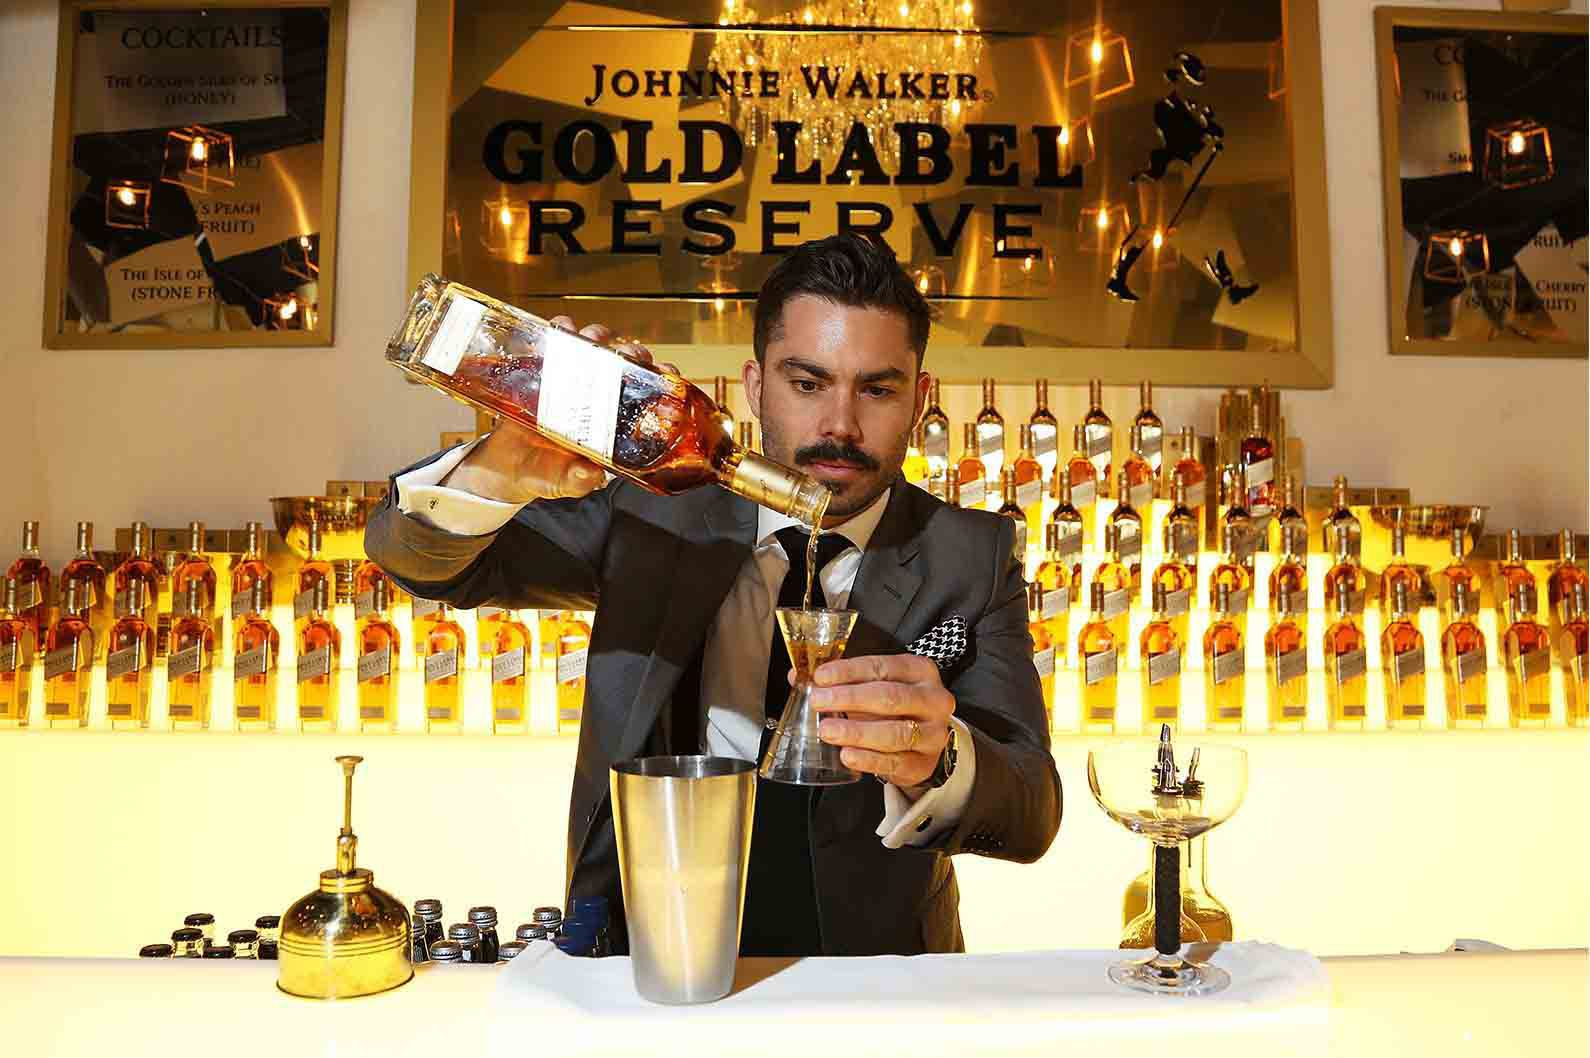 Bartender sirviendo whisky en un bar de Johnnie Walker Gold Label Reserve